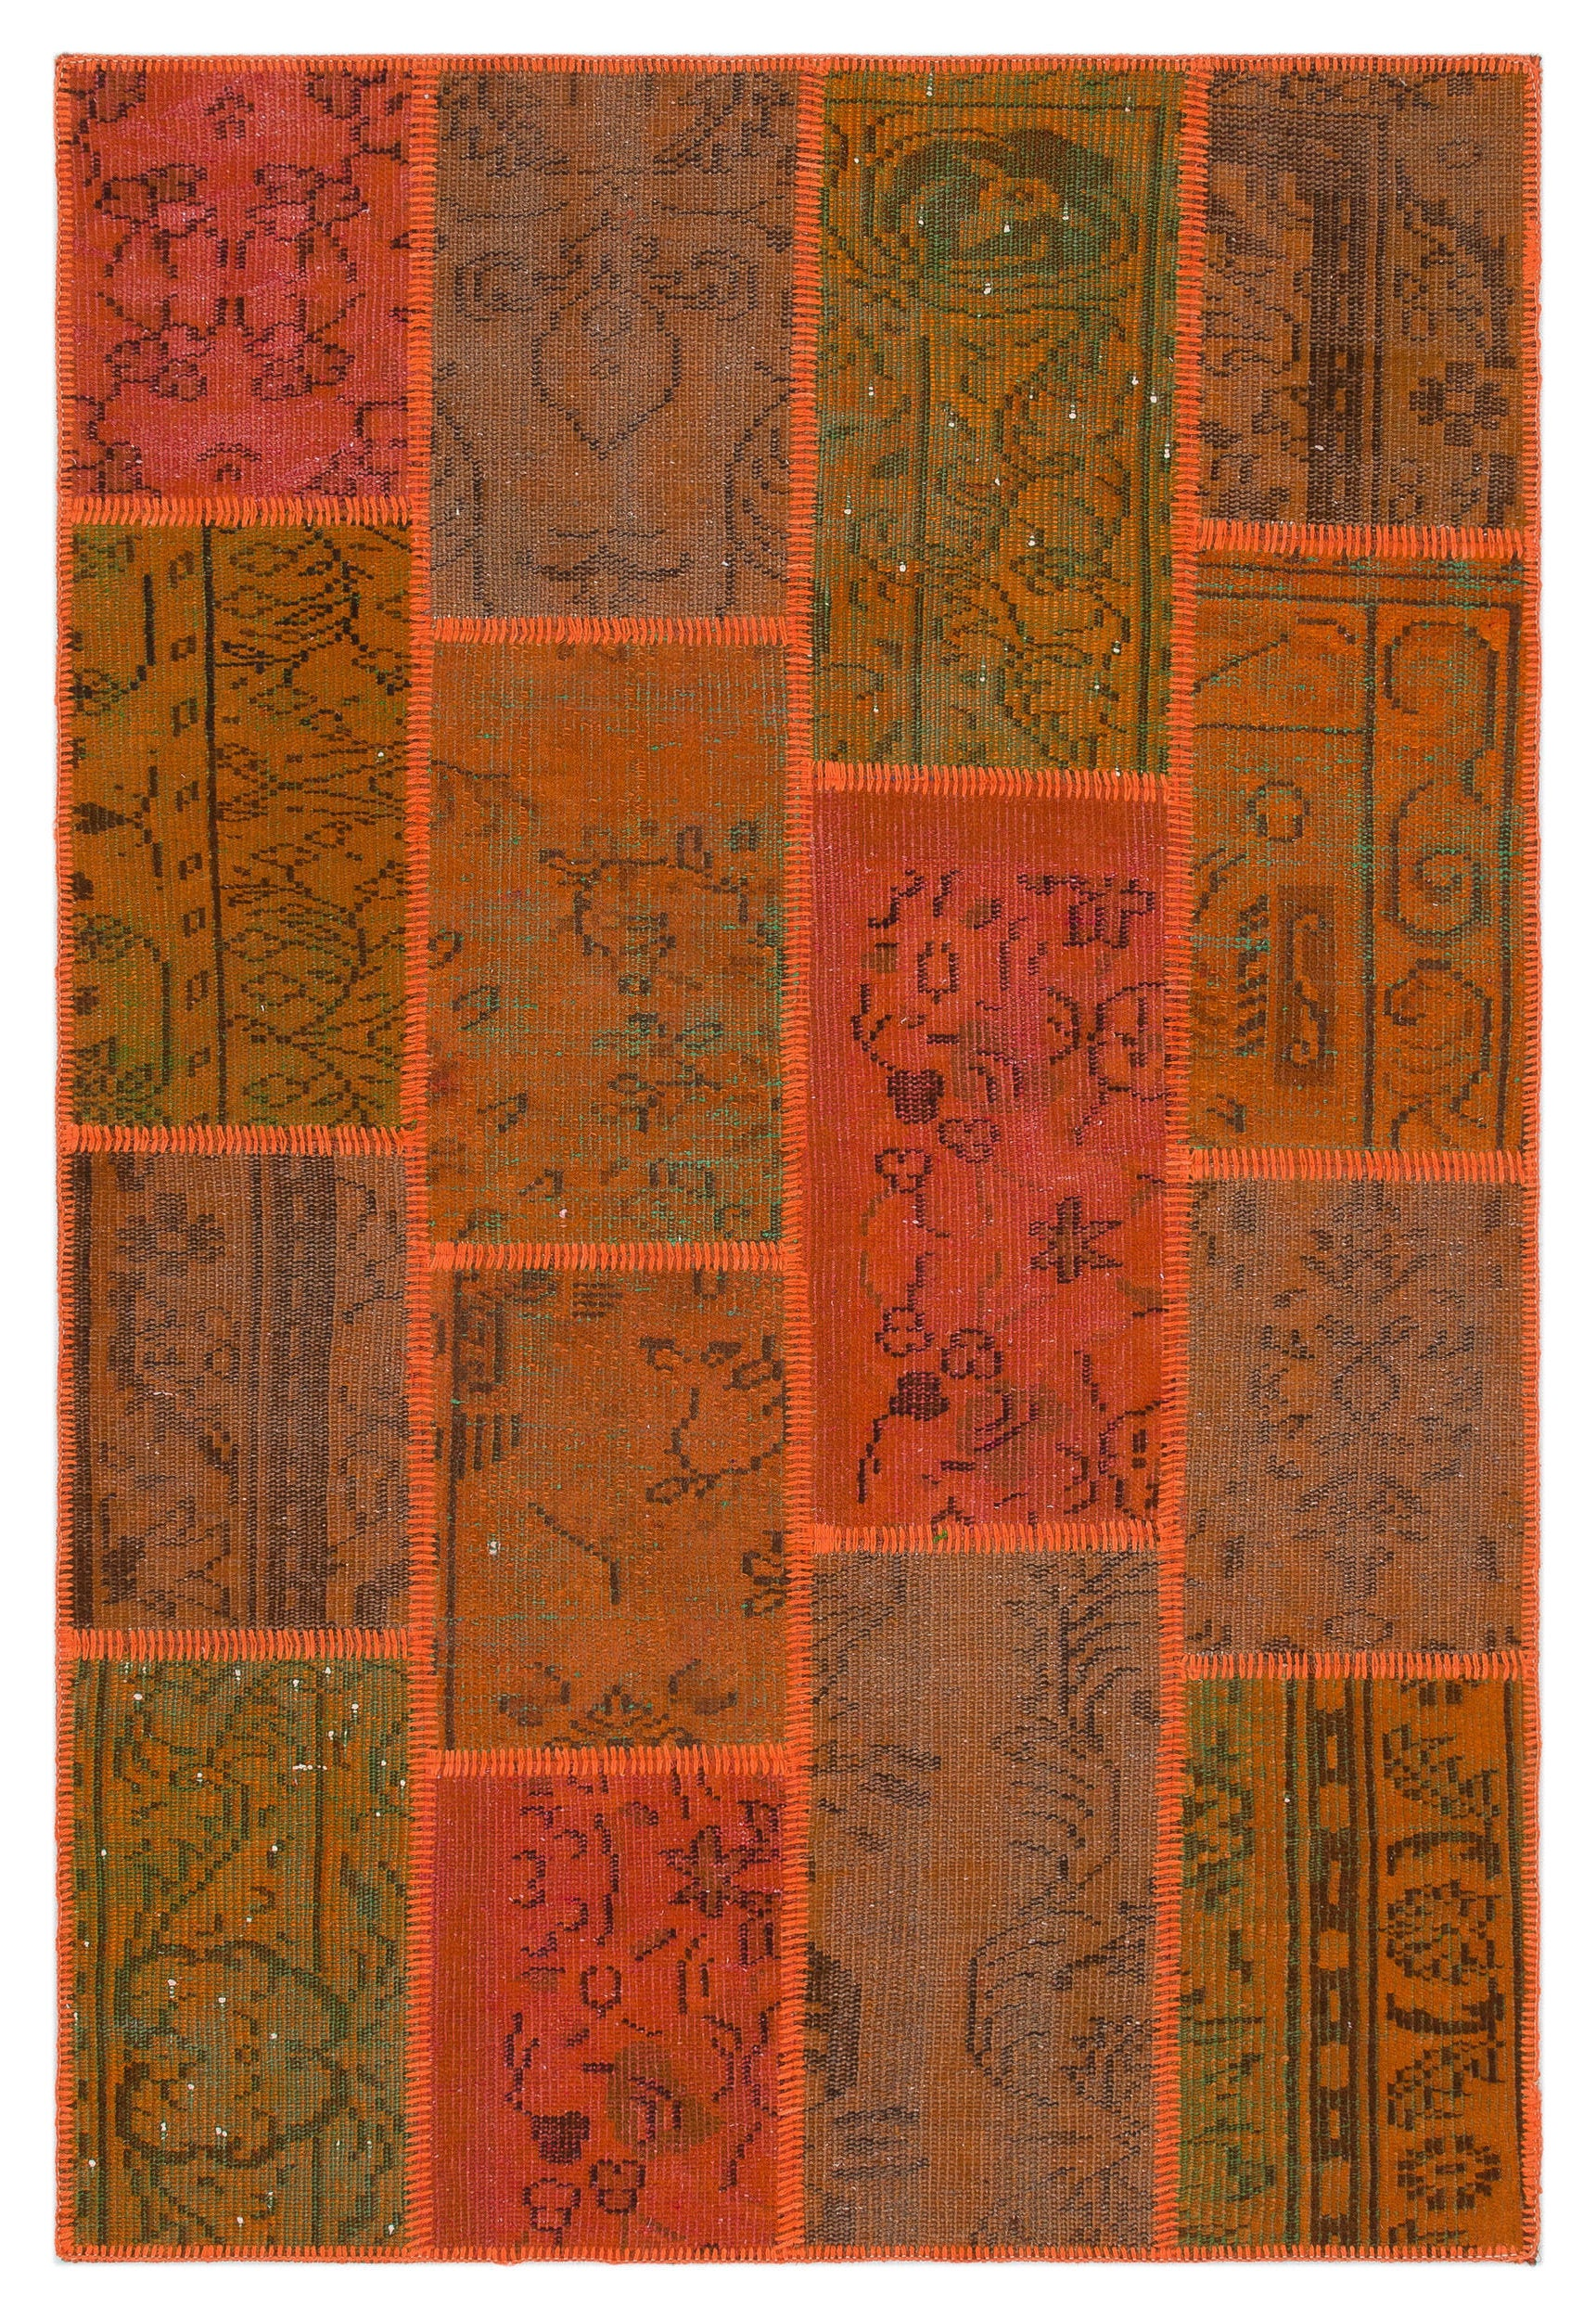 Orange Over Dyed Patchwork Unique Rug 3'11'' x 5'11'' ft 120 x 180 cm